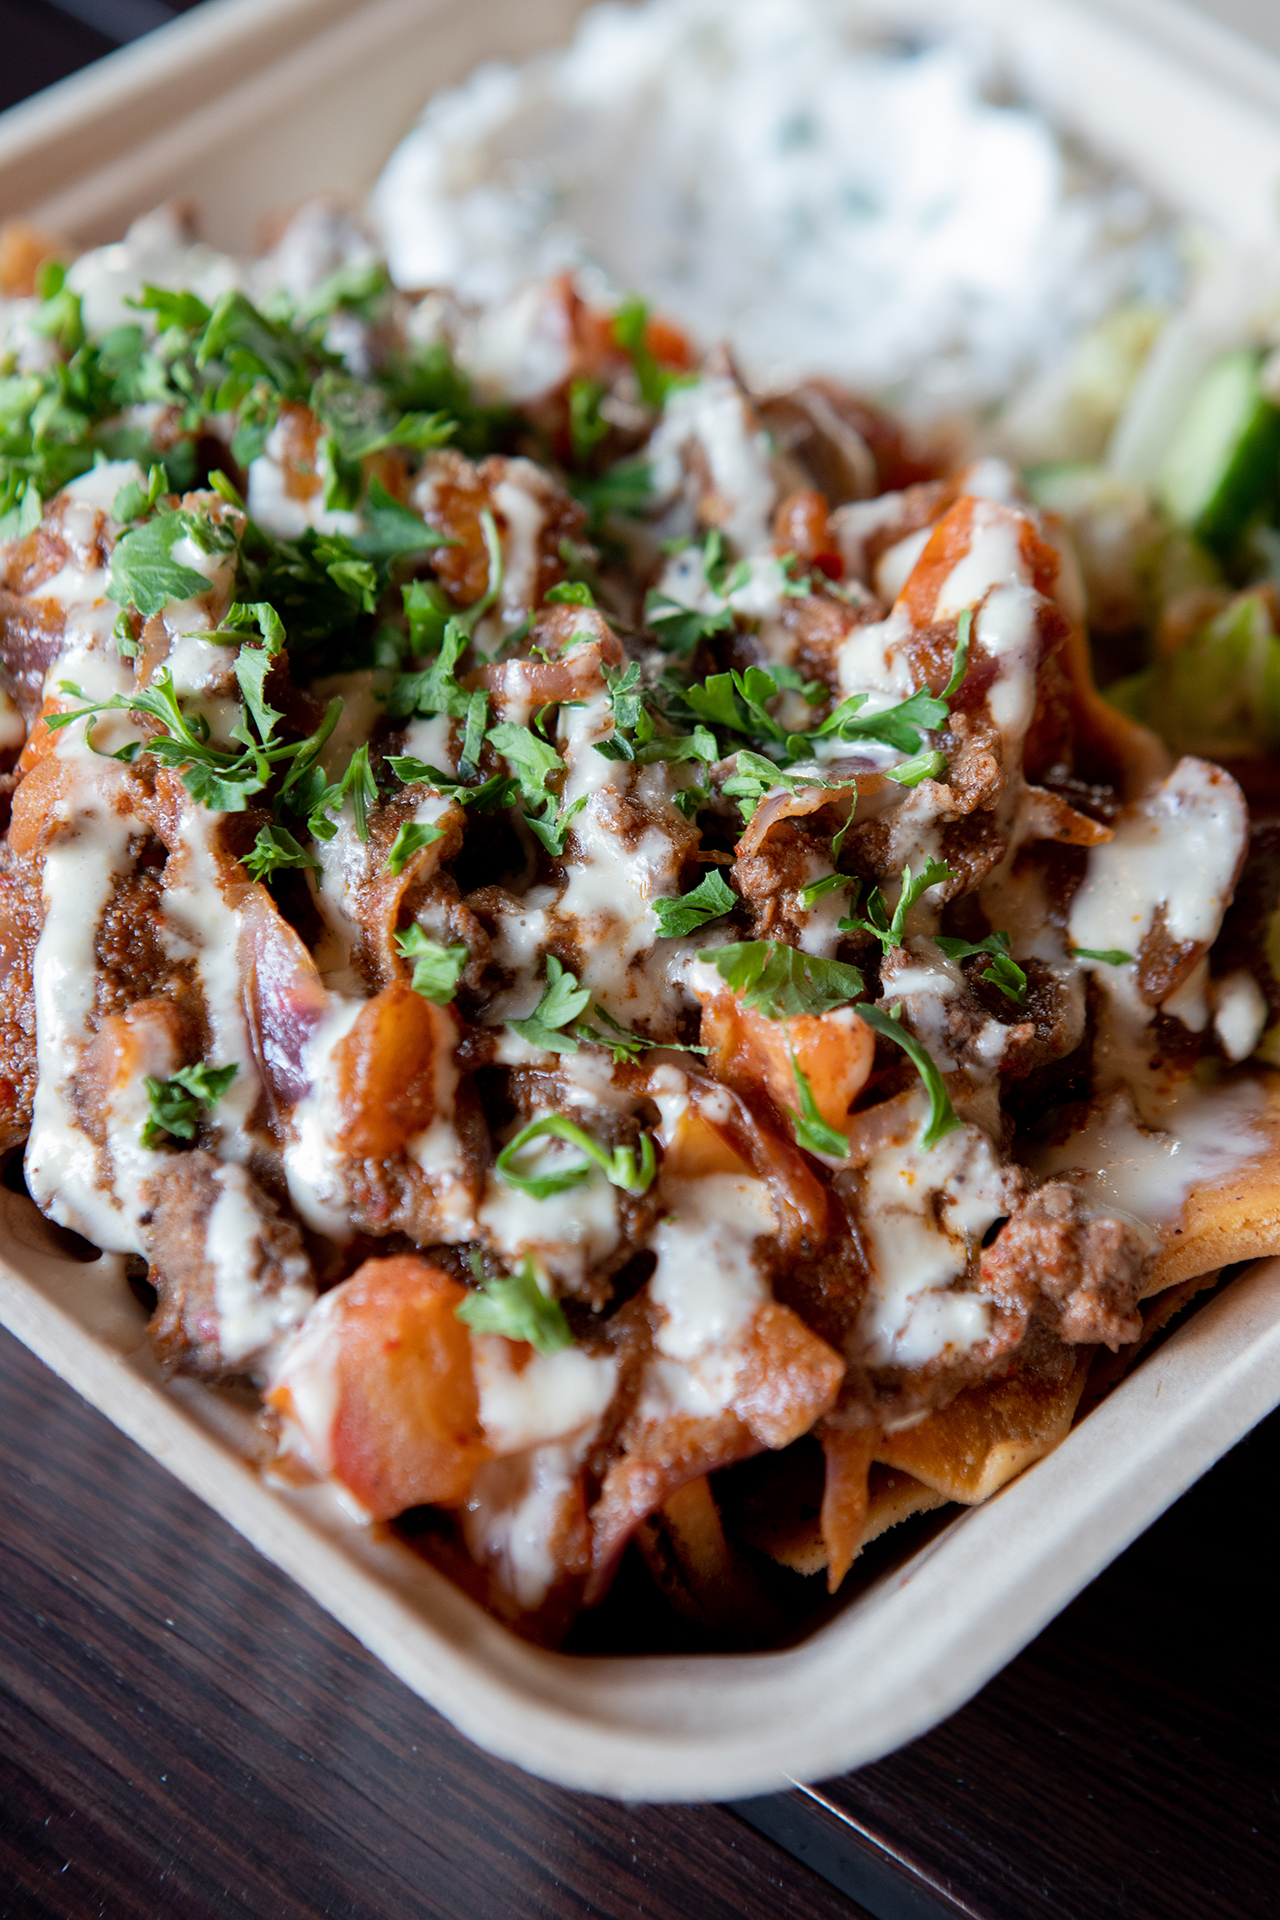 Chicken Shawarma Nachos are pictured up close on top of a black metallic table in the hummus labs restaurant. The plate is topped with tahini sauce and accompanied by a side of salad and tzatziki.